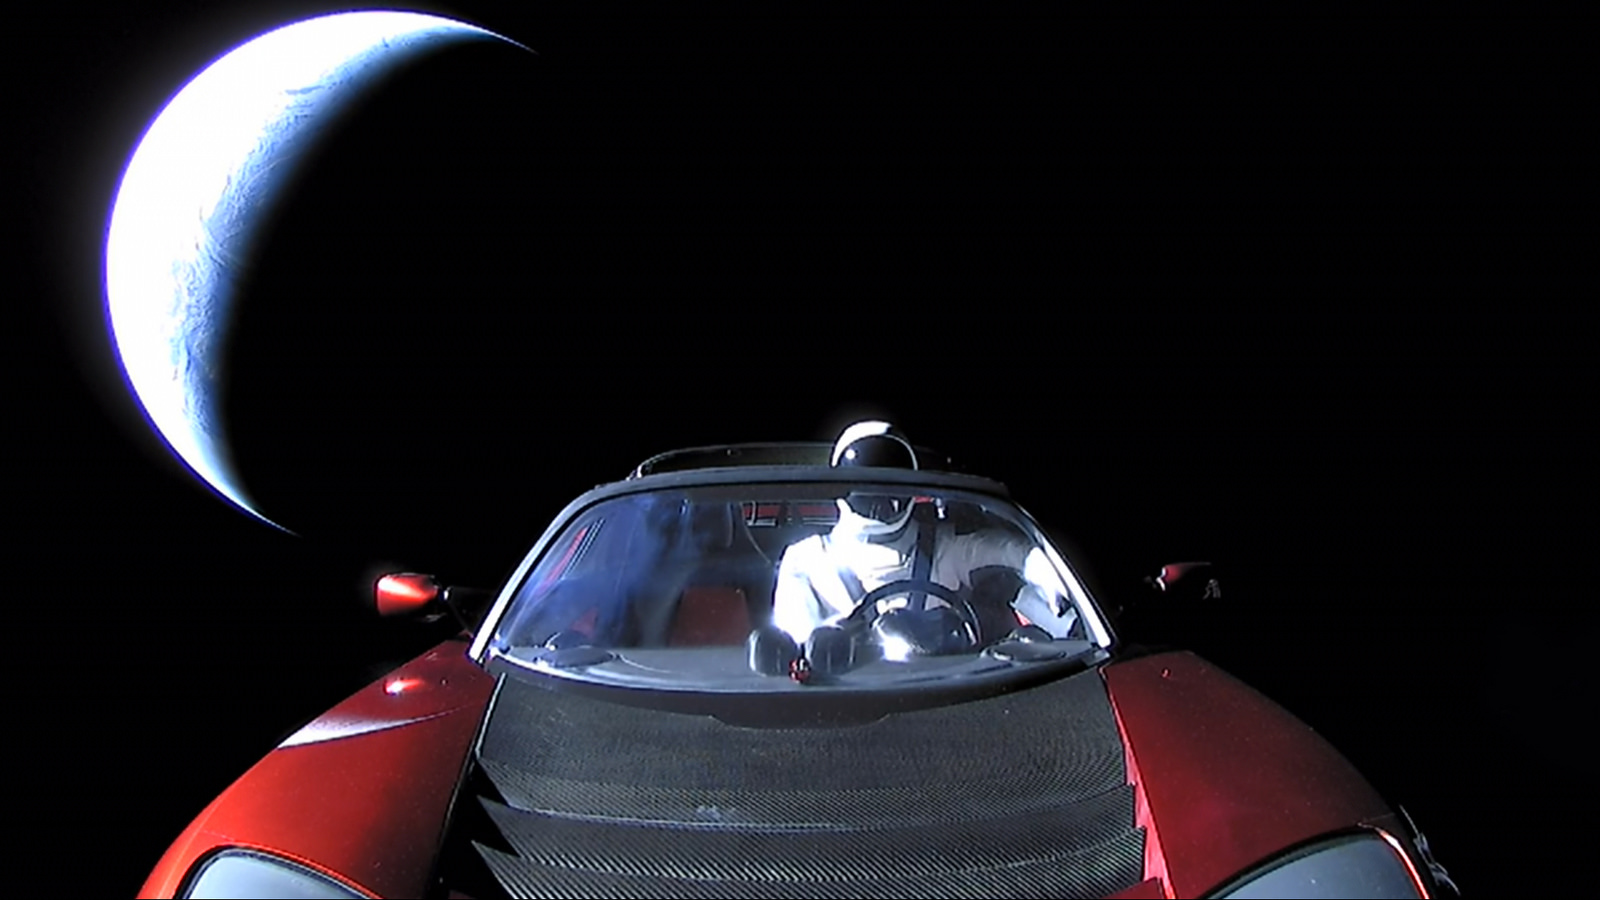 Elon Musk S Tesla Roadster Reaches Its Hest Point From The Sun